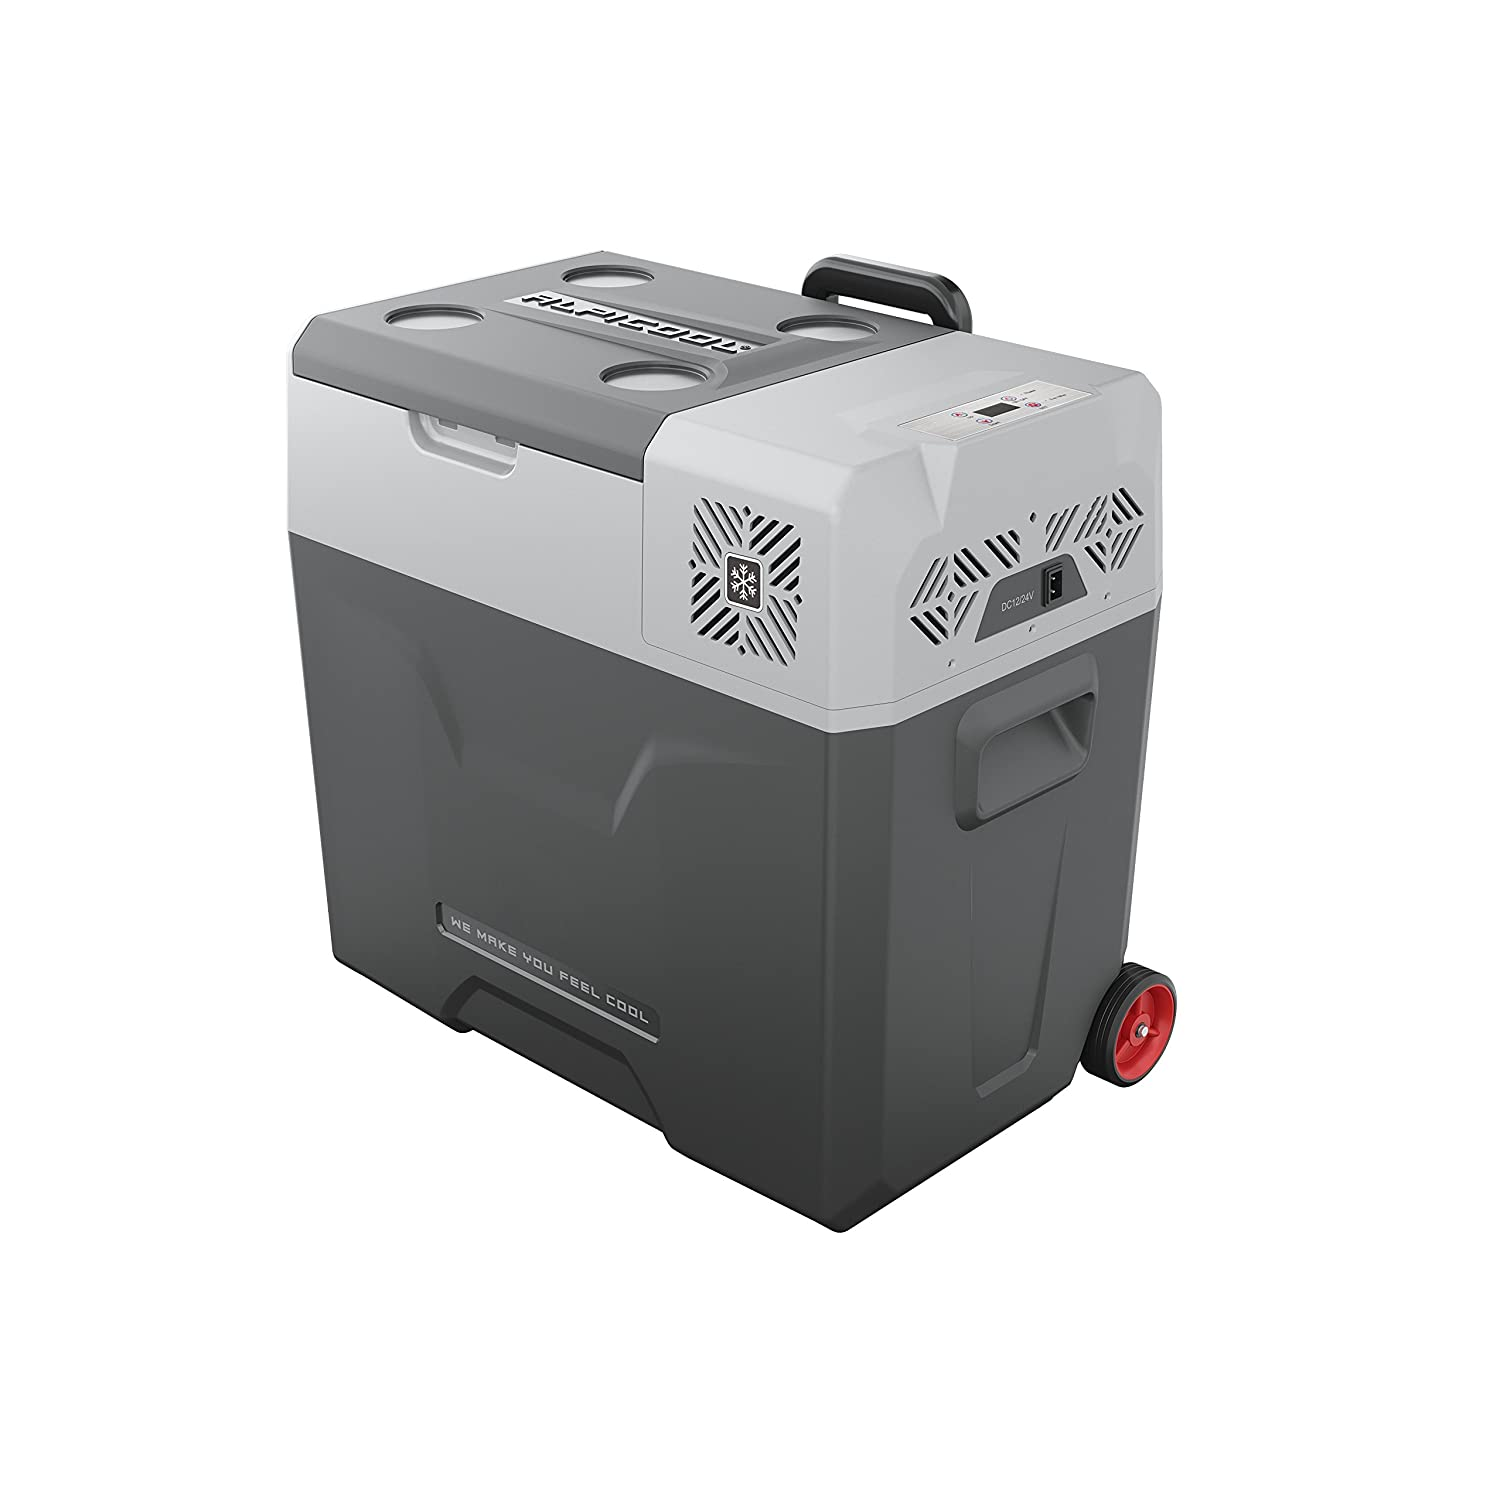 Alpicool CX50 Portable Refrigerator 53 Quart(50 Liter) with Trolley Vehicle, Car, Truck, RV, Boat, Mini Fridge Freezer for Driving, Travel, Fishing, Outdoor and Home use -12/24V DC and 110-240 AC